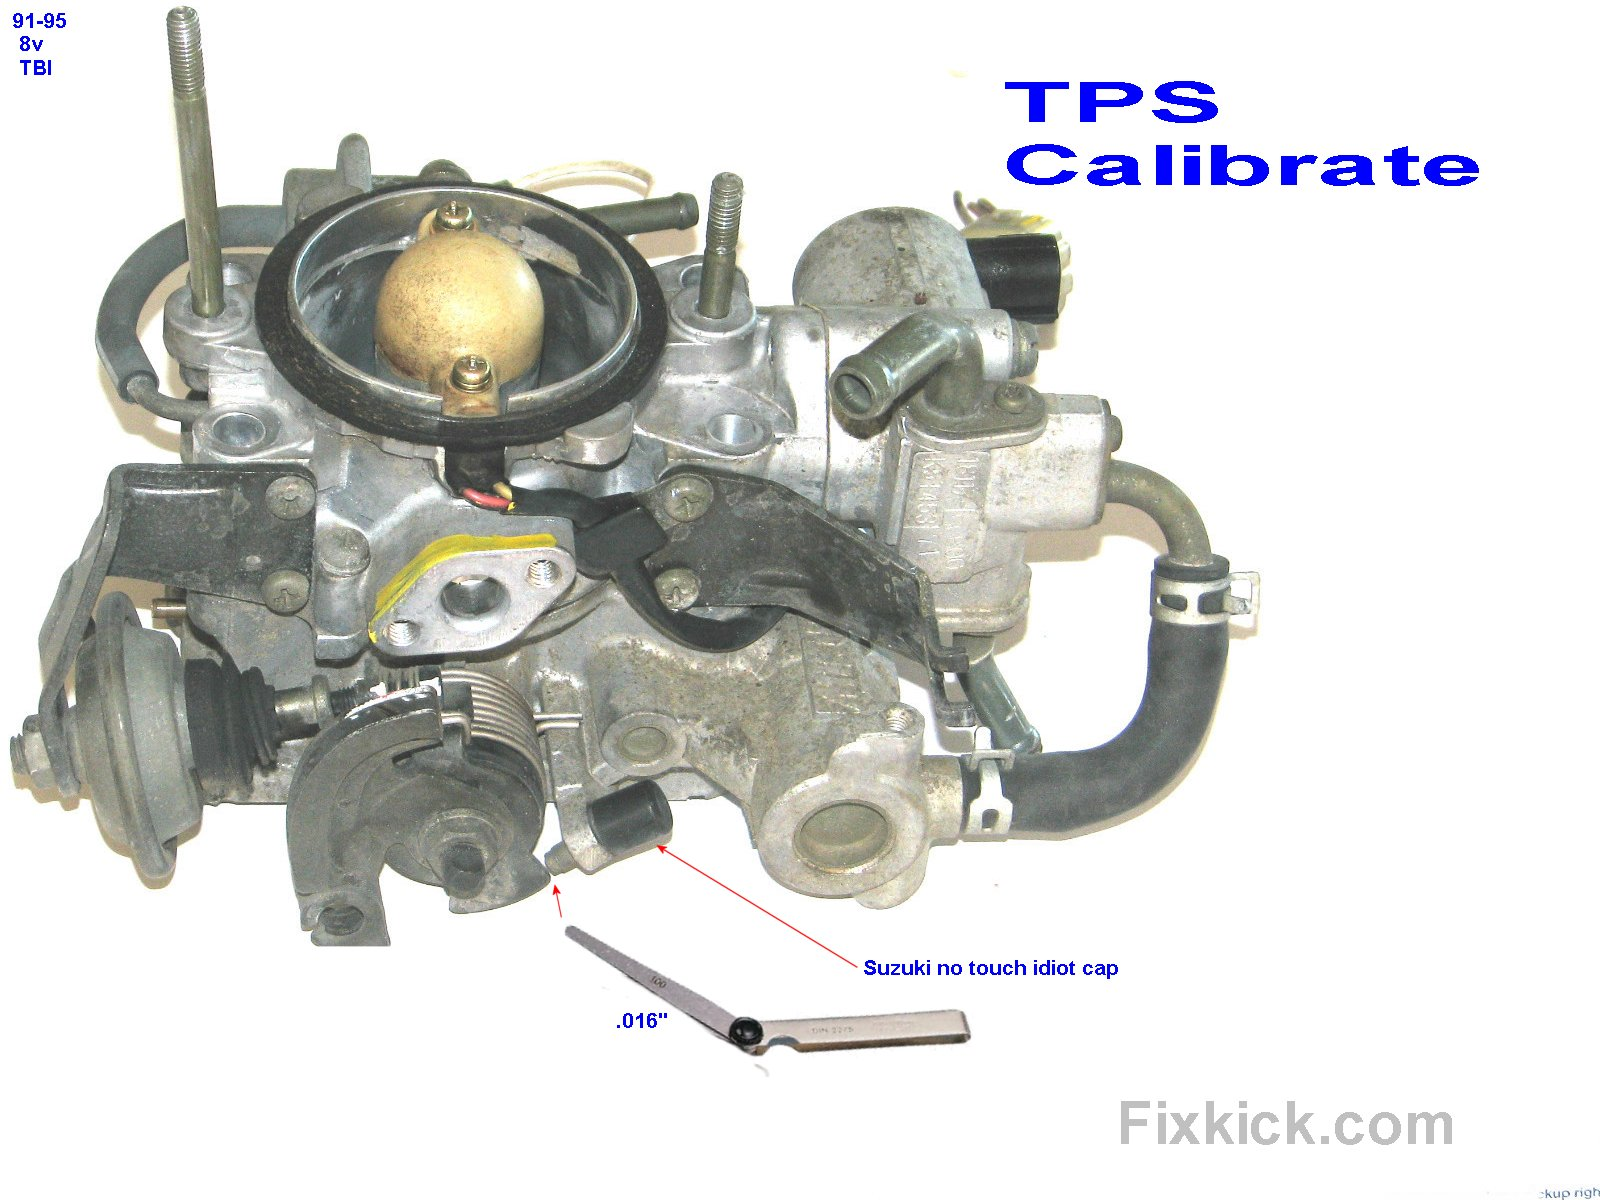 TPS testing and calibration, all Sidekicks and Trackers